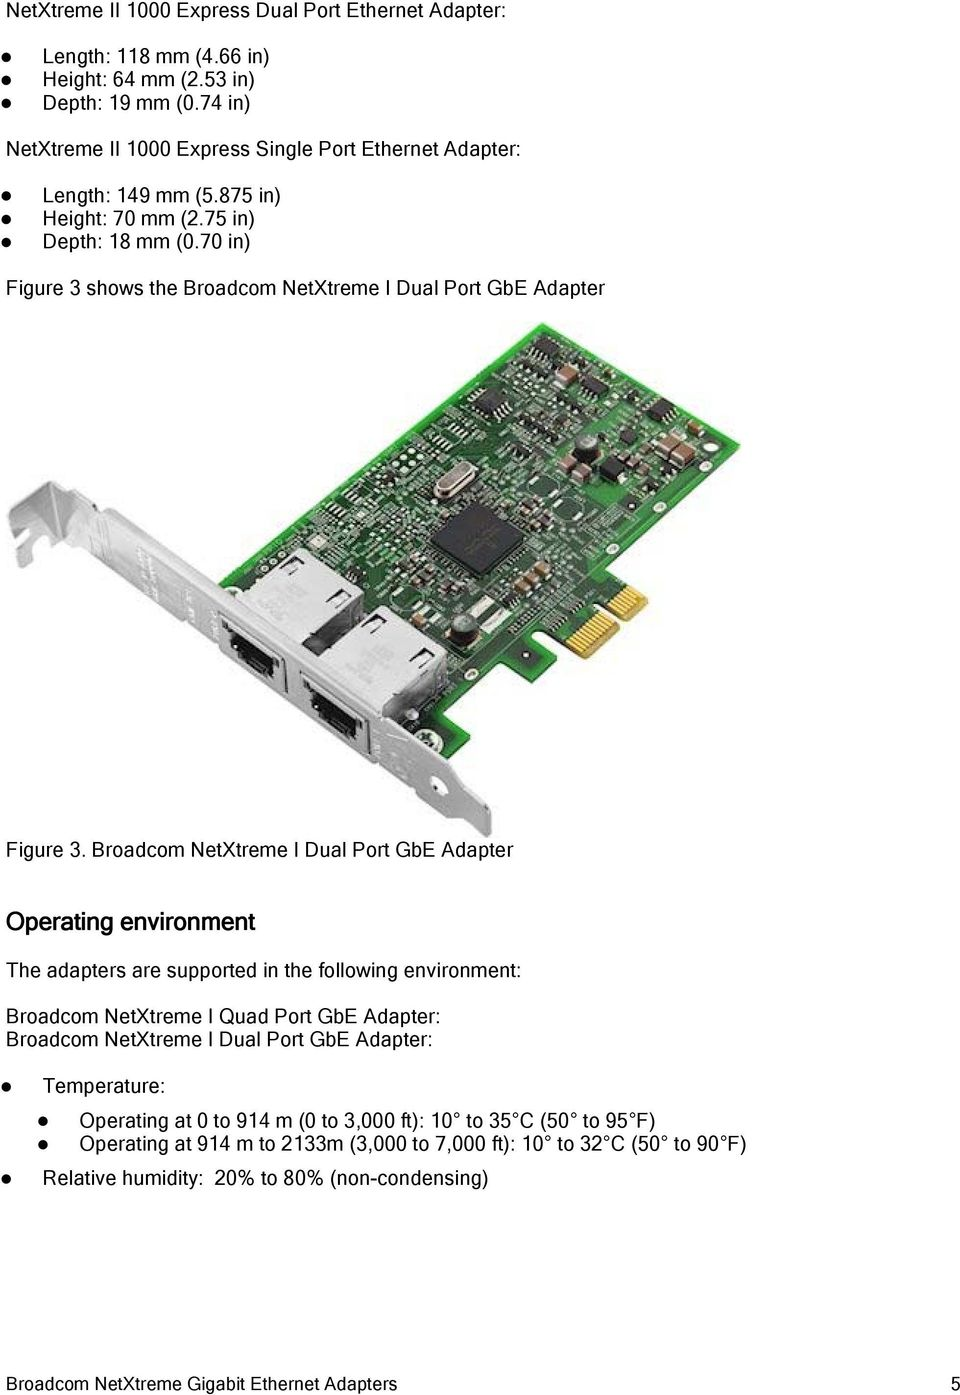 BROADCOM NETXTREME II 5708C DRIVER WINDOWS